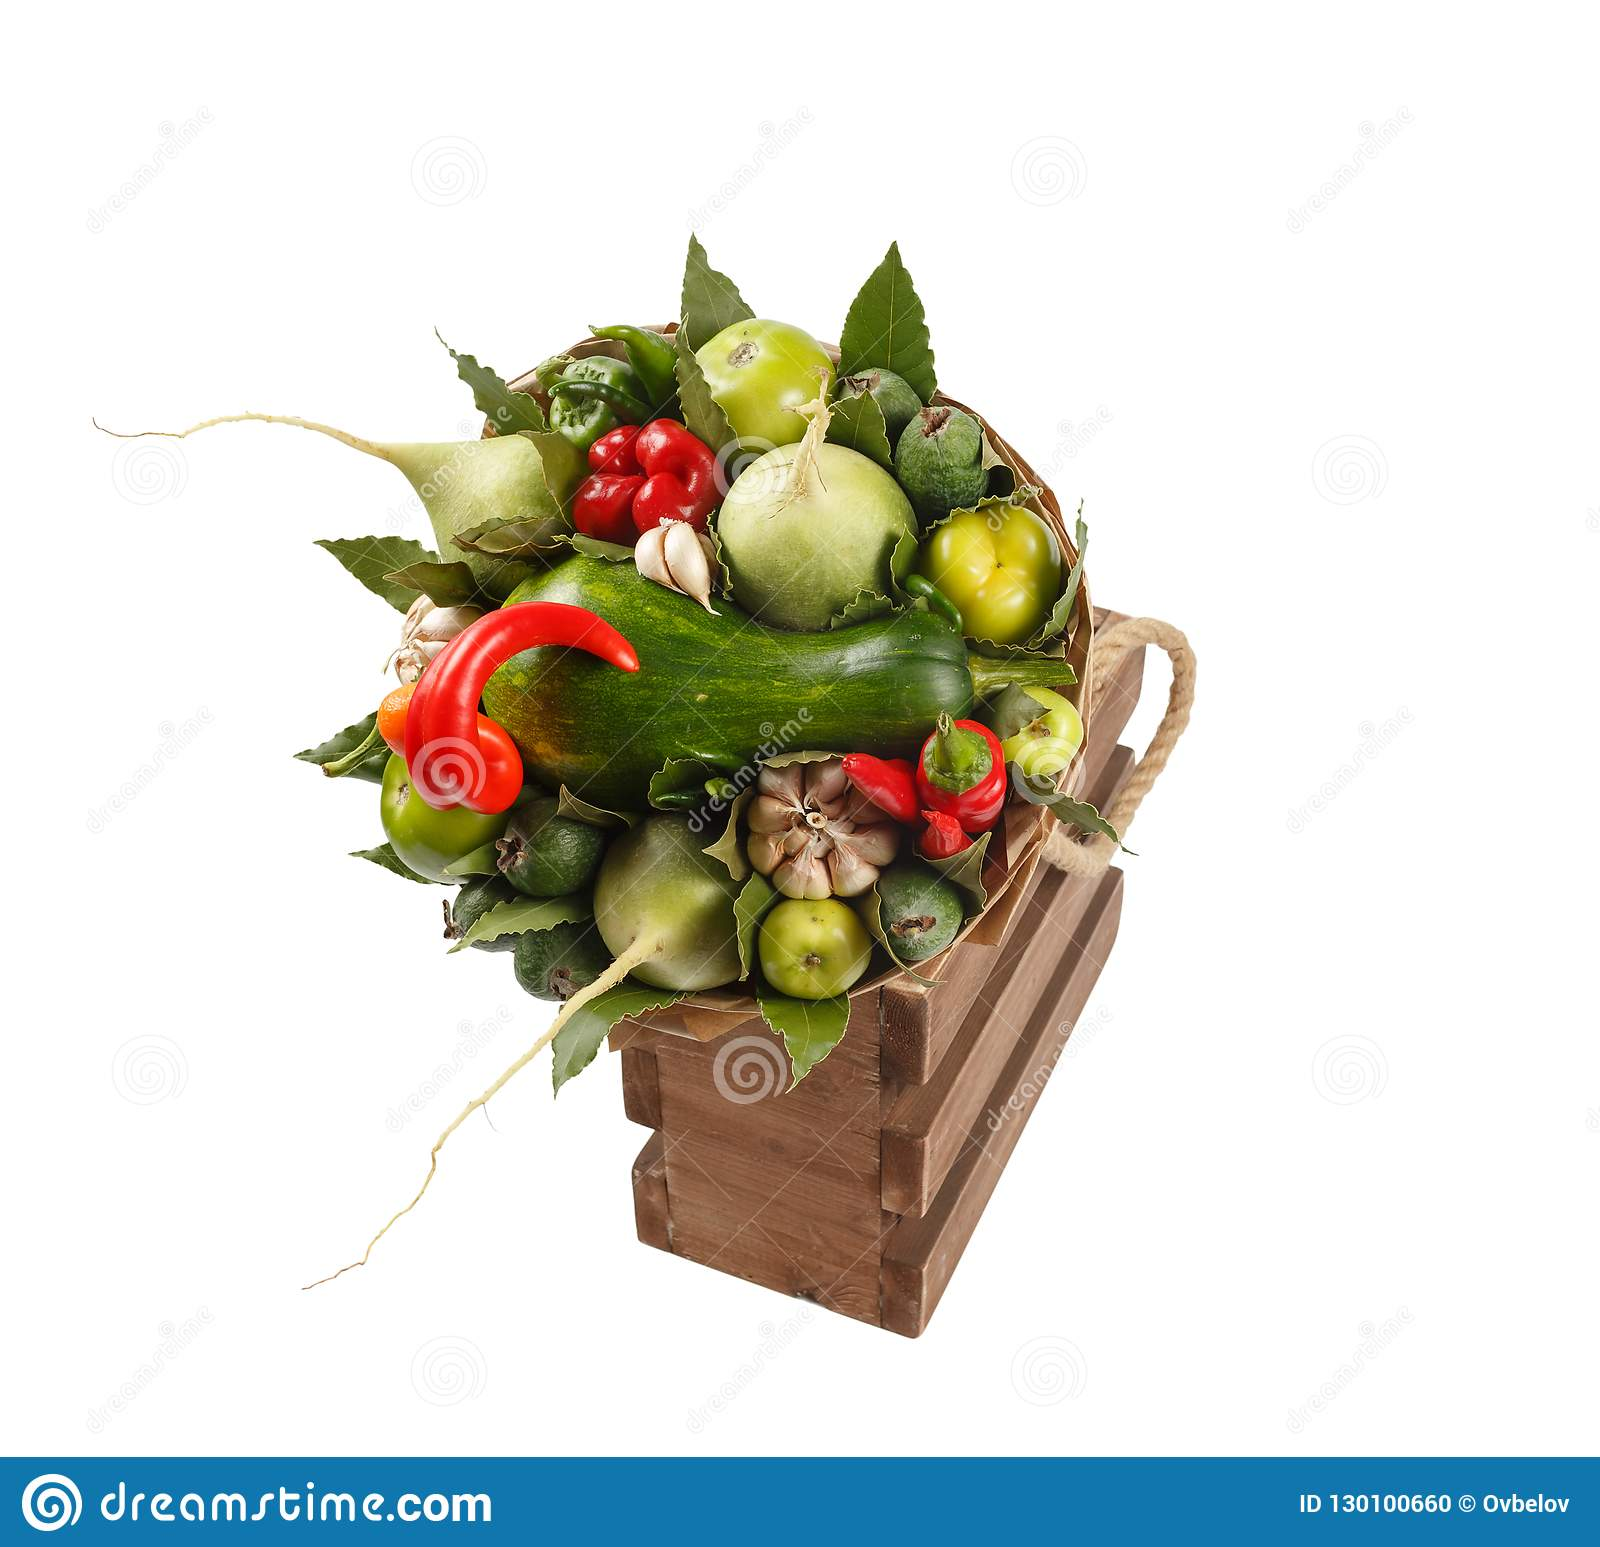 Unique Colorful Bouquet Of Vegetables And Fruits In A Wooden Box As A Gift On A White Background Stock Photo Image Of Holiday Isolated 130100660